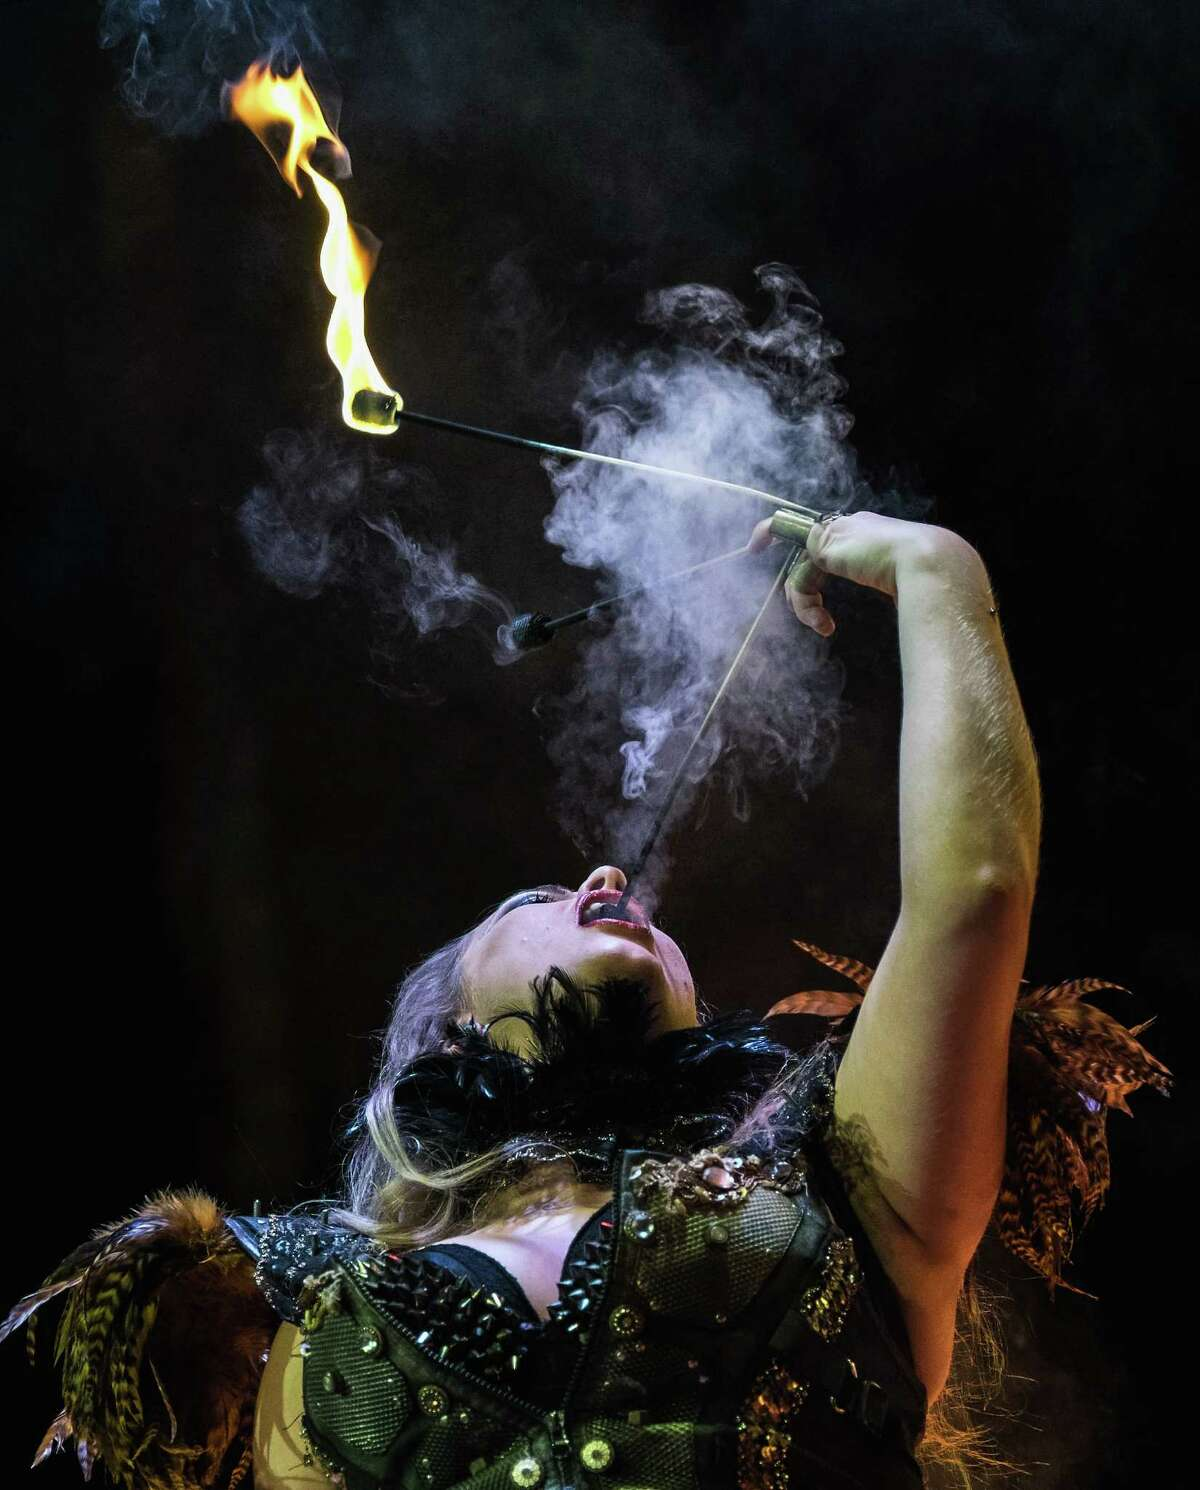 Asia Sawrka, a performer with the Circus of Horrors, performs during an evening show at the Town Hall on March 20, 2015 in Middlesbrough, England. The Circus of Horrors, billed as horror-themed circus freak show, debuted in 1995 at Glastonbury festival and in 2011 reached the finals of Britain's Got Talent. Last year they began a run in London's West End, the first circus to appear in a West End Theatre for 100 years. They are marking their 20th anniversary with their latest incarnation 'The night of the Zombies', which is set in a corpse ridden London in 2020 where the city is plagued by a swamp of zombies and ruled by the undead.